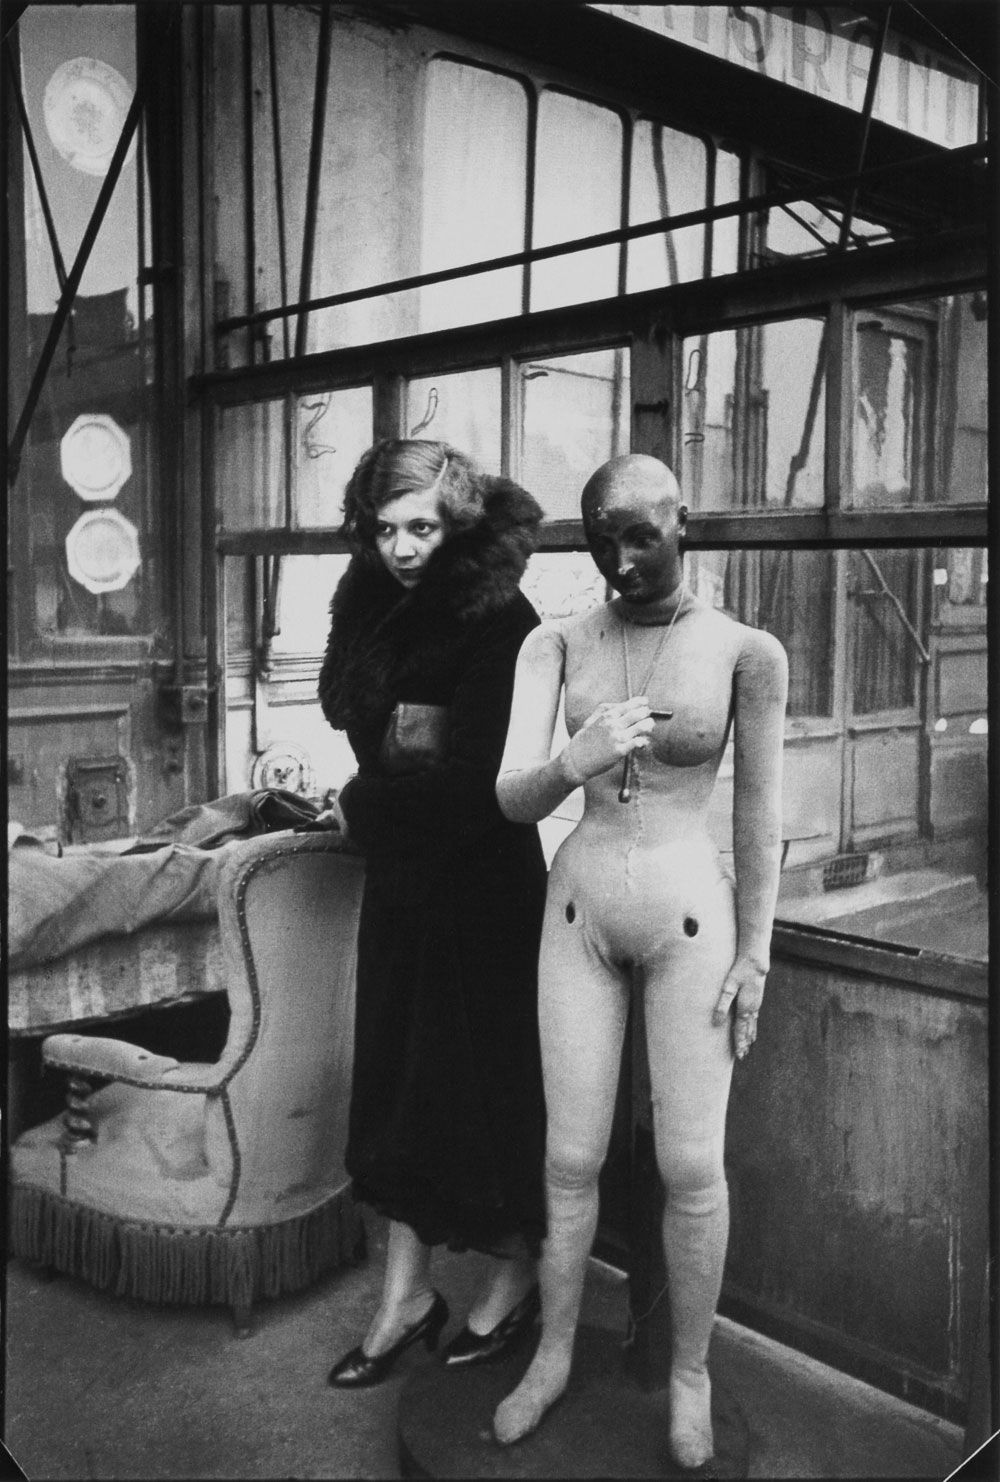 1932 Henri Cartier-Bresson, Leonor Fini, Paris,